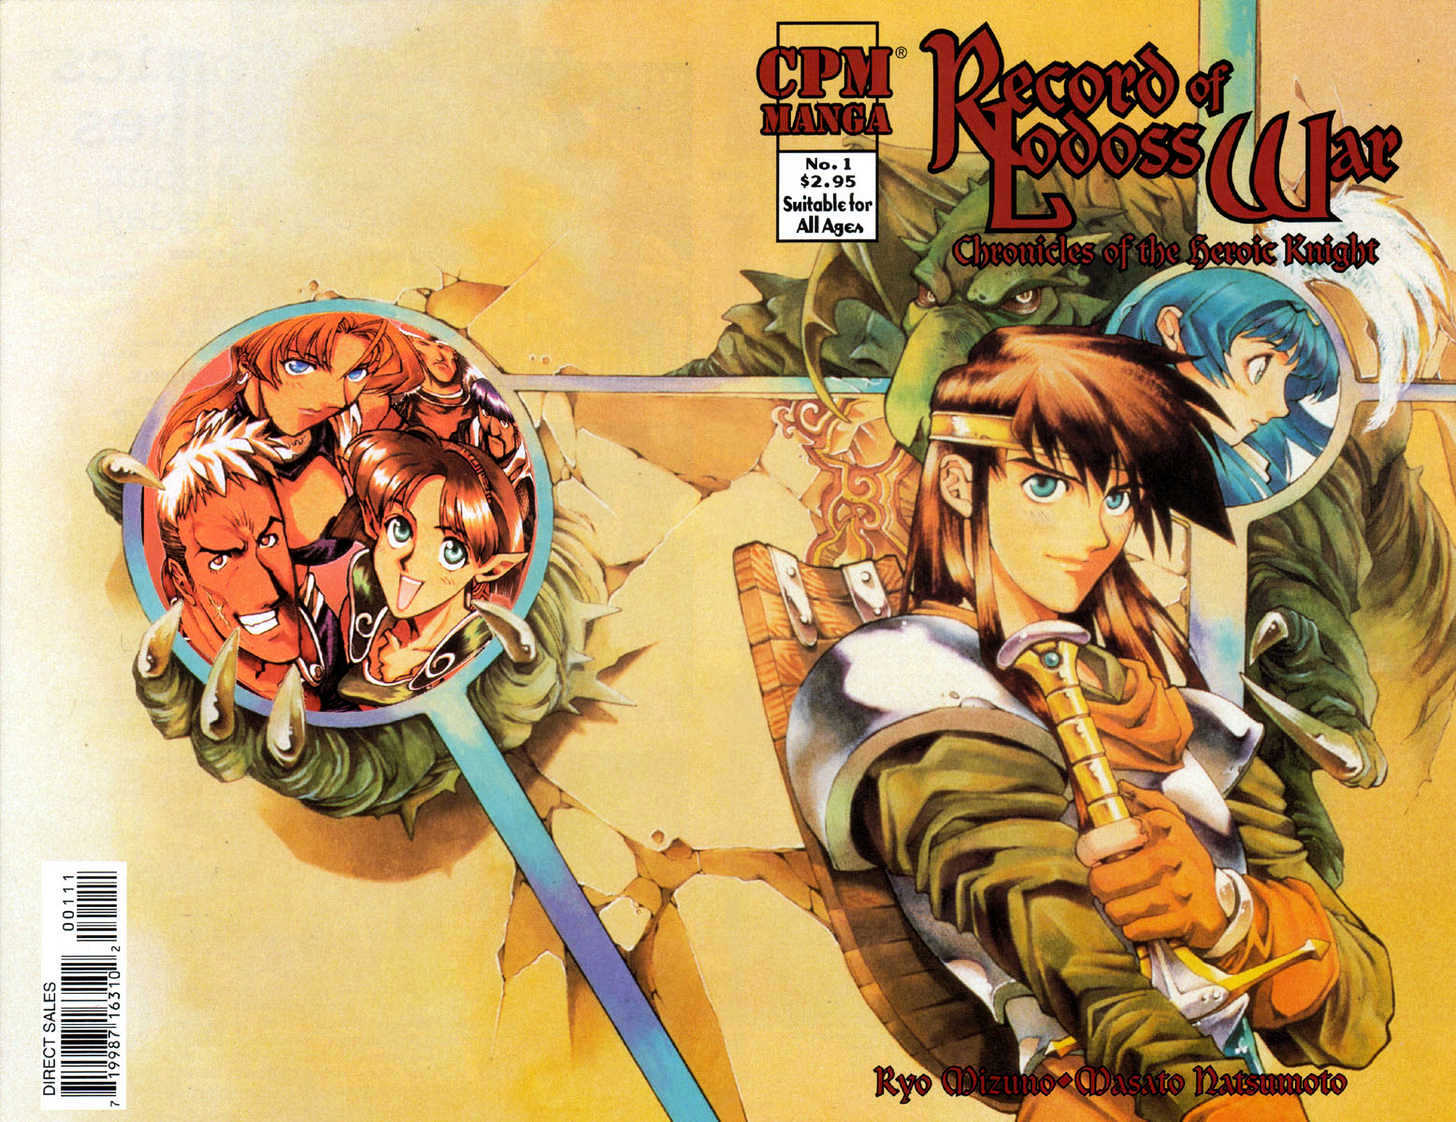 Record of Lodoss War - Die Chroniken von Flaim Cover